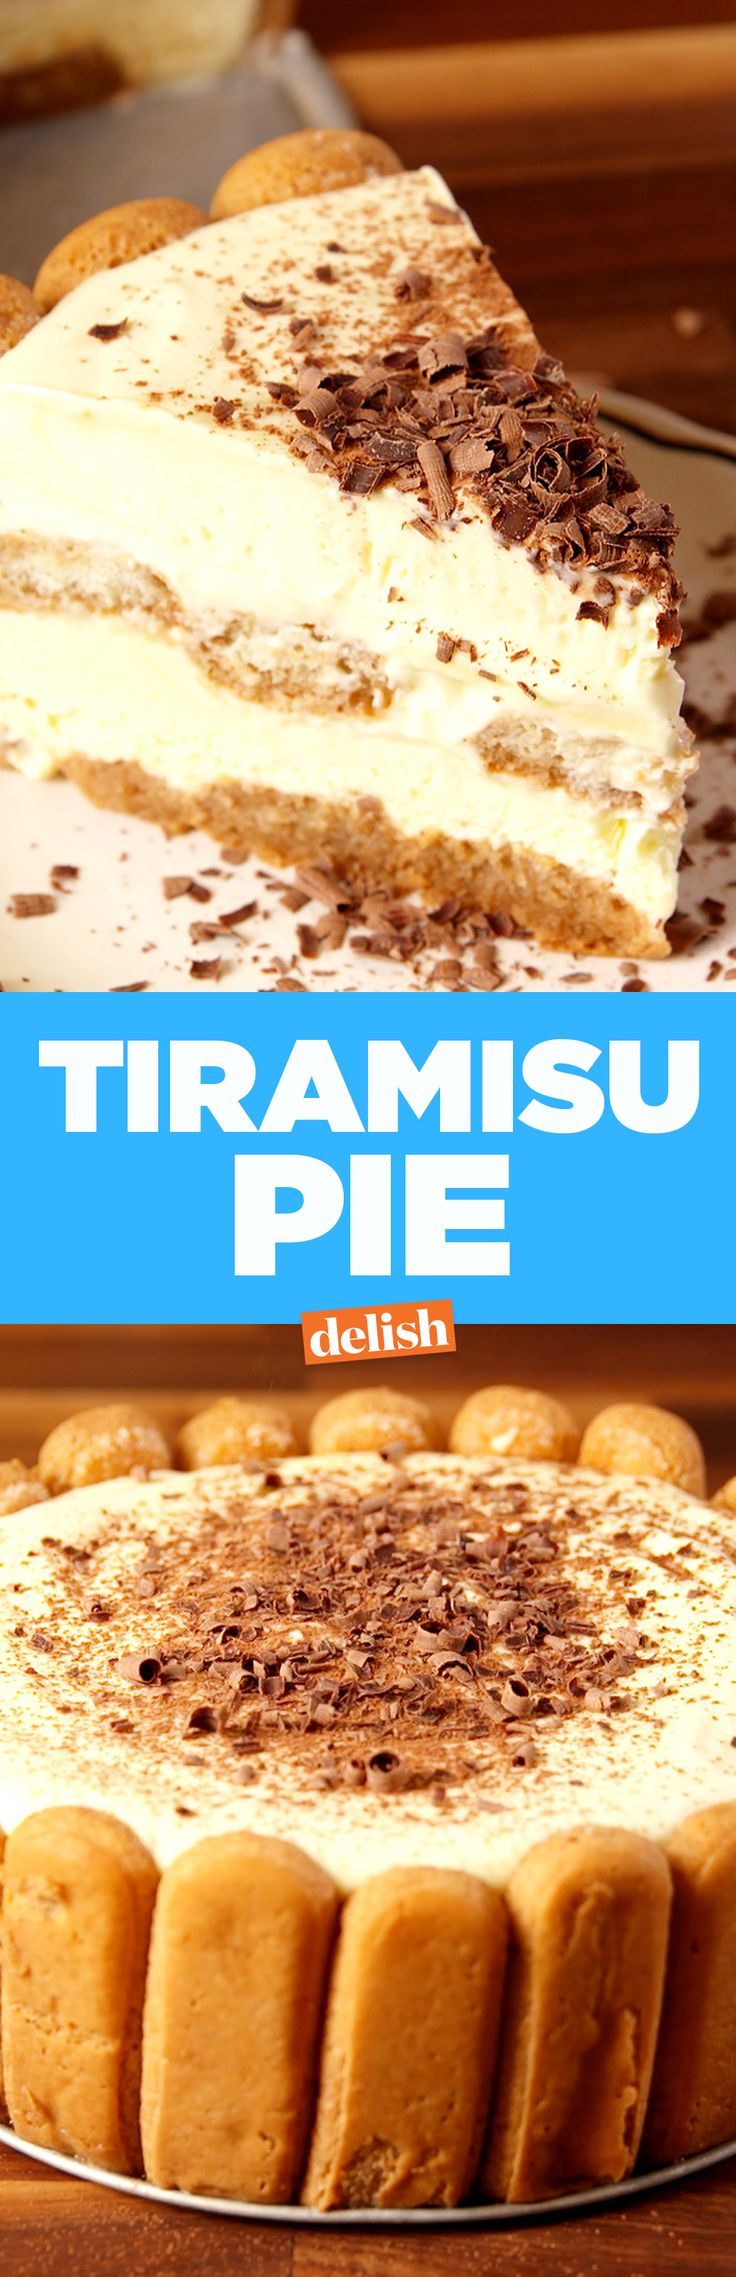 You won't be able to keep your (lady) fingers off this Tiramisu Pie. Get the recipe on Delish.com.